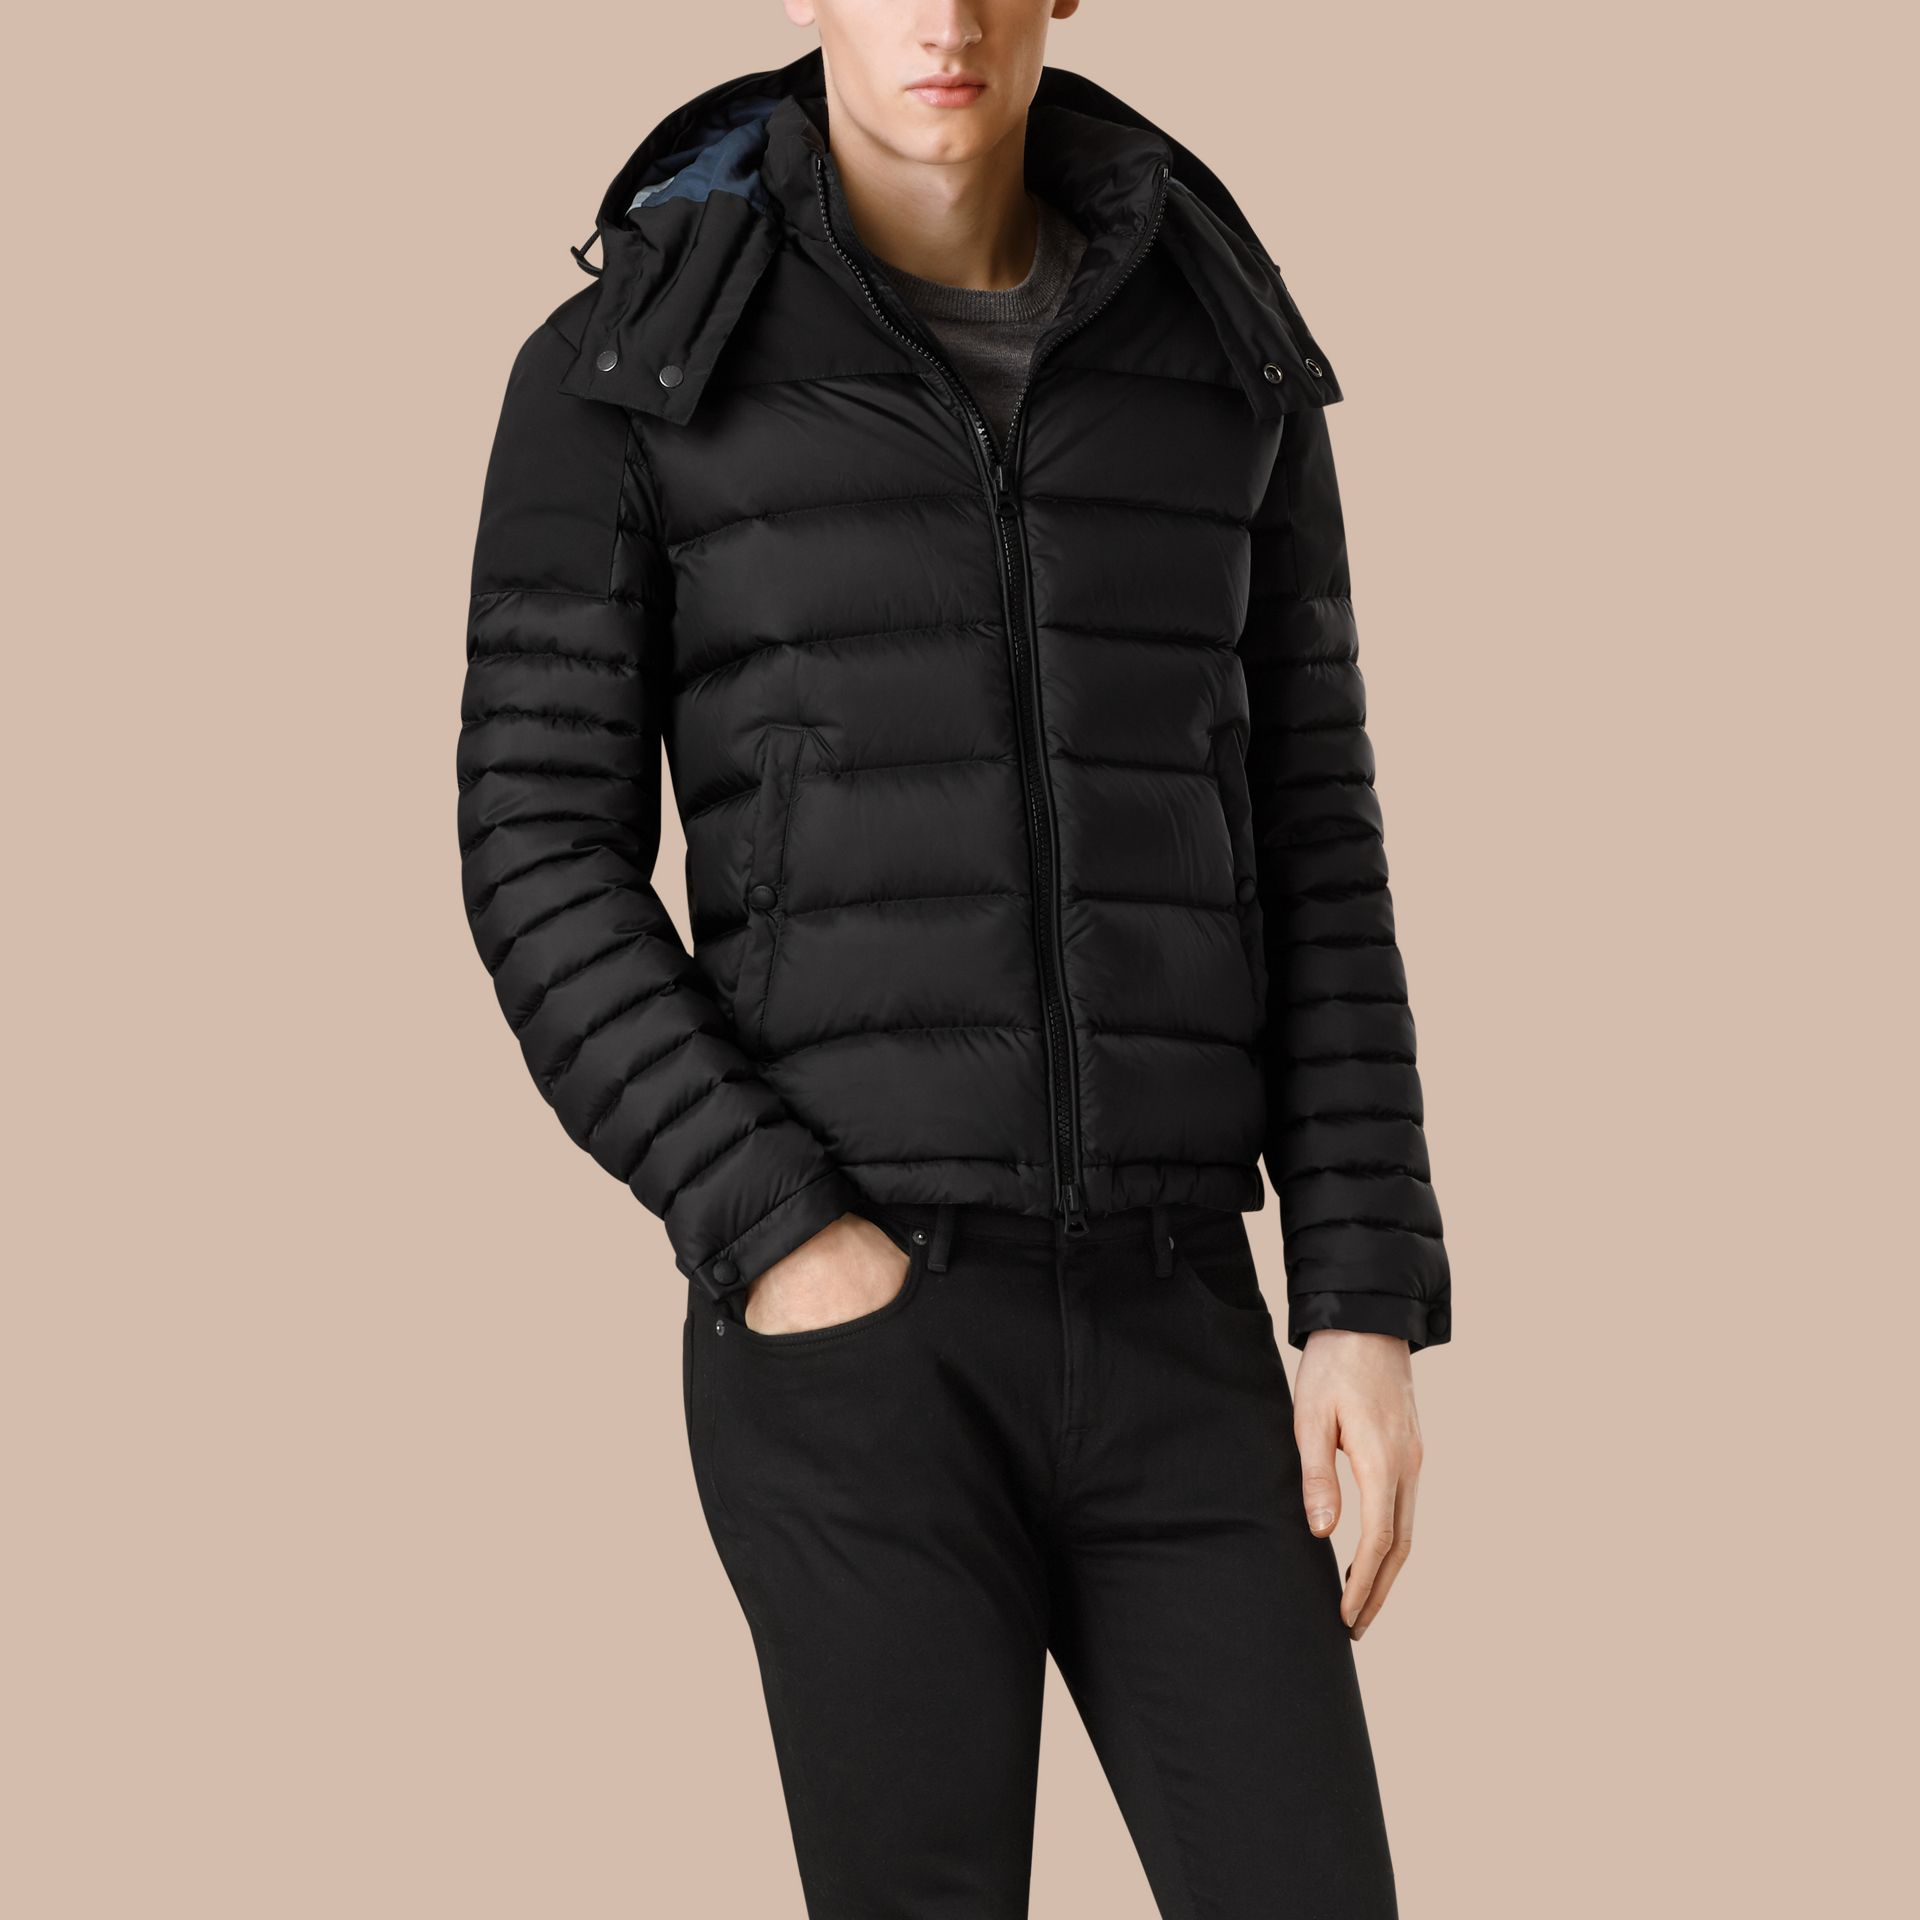 Black Mid-weight Down-filled Technical Puffer Jacket Black - gallery image 3